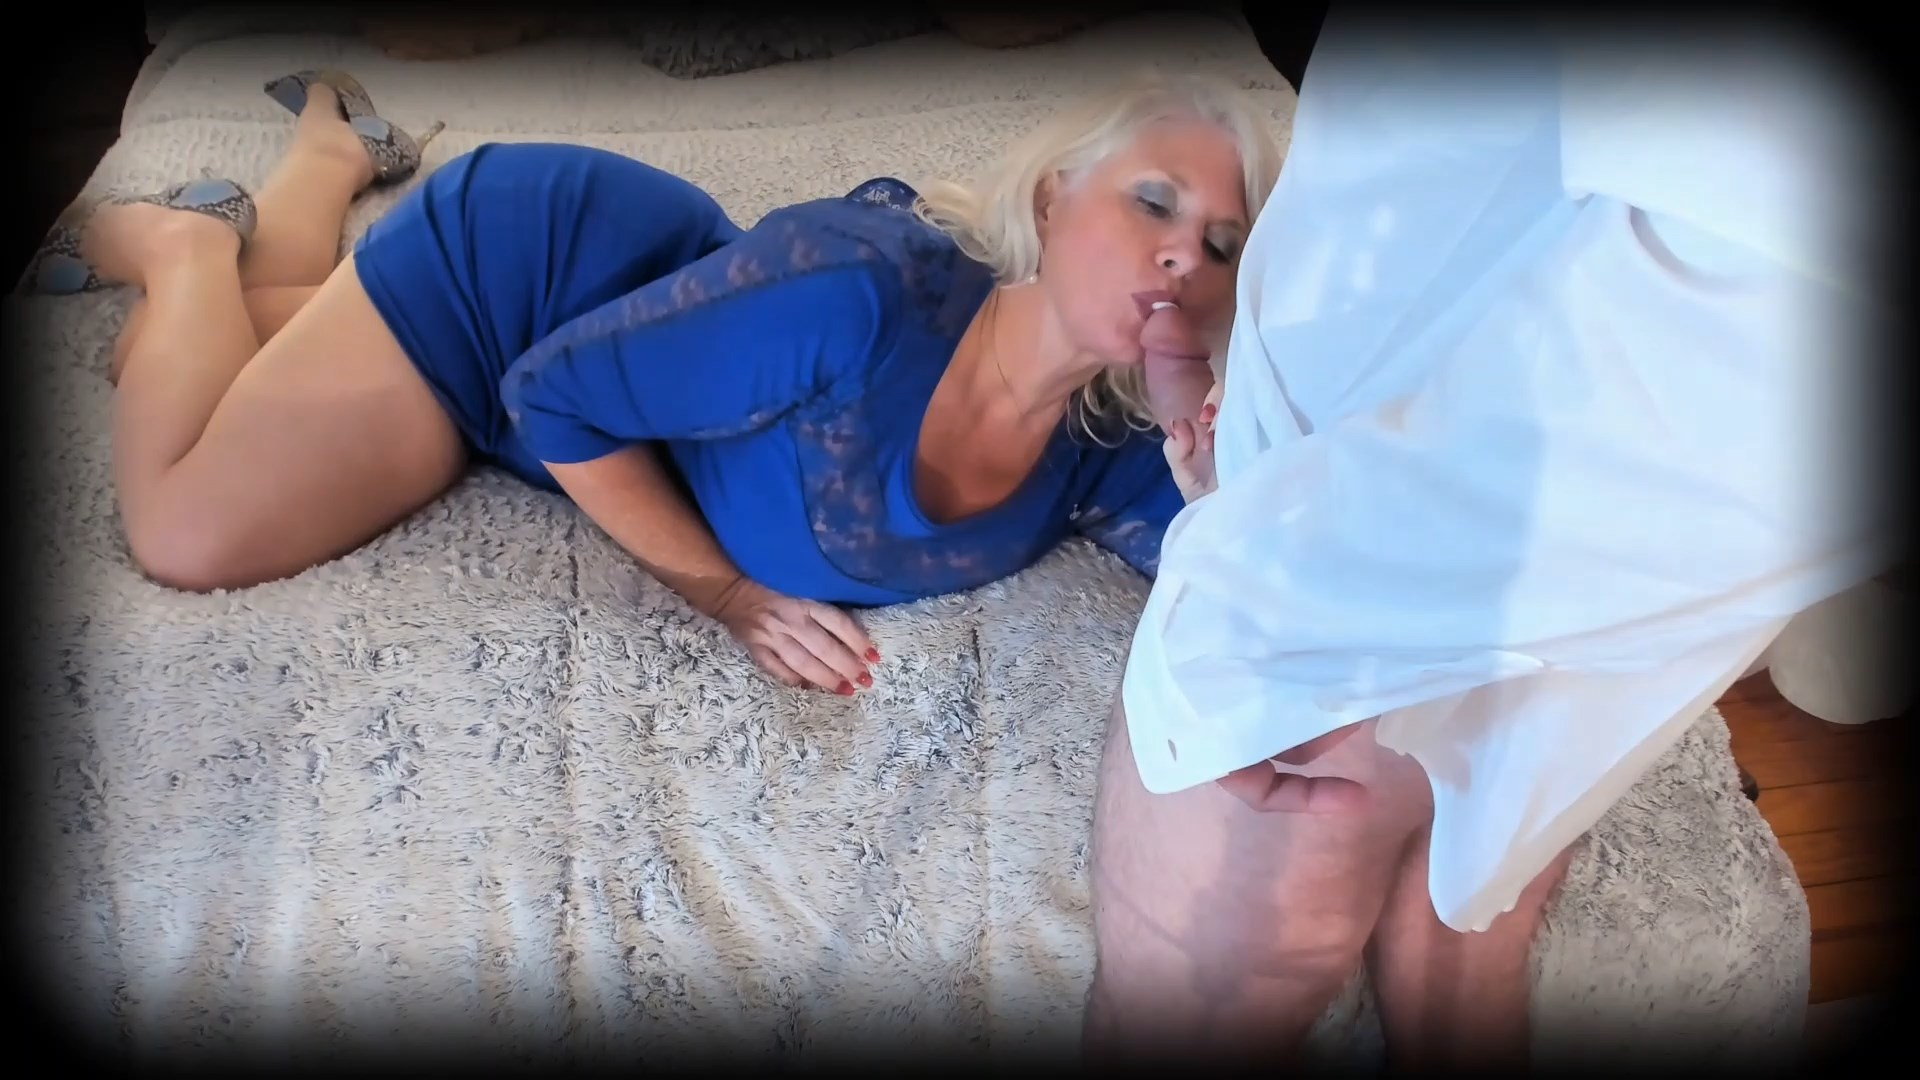 Painted Rose - Wedding Blackmail - Mil Dominates You